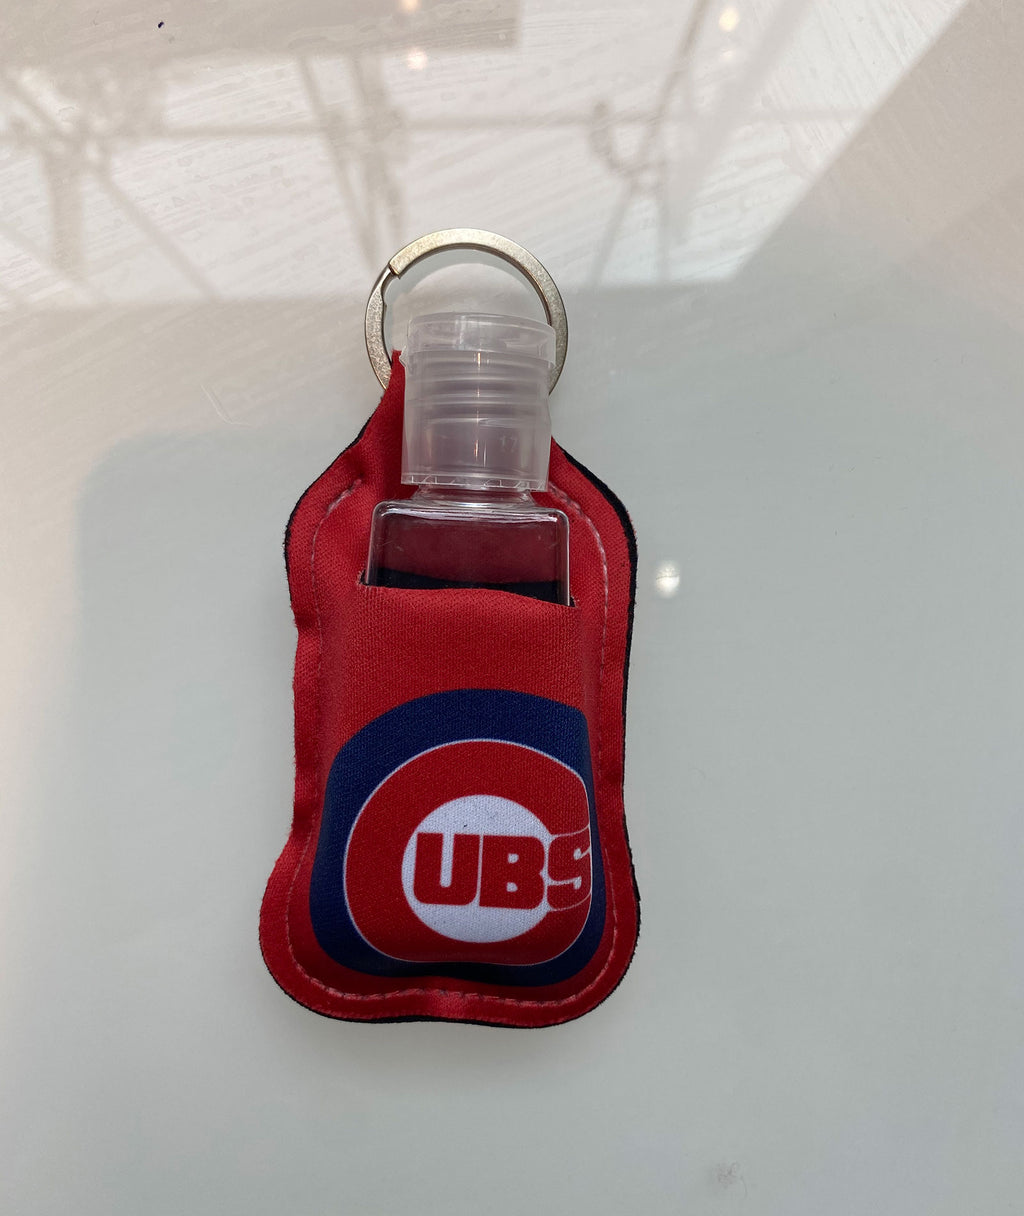 Truly Whimsical Hand Sanitizer Holder Cubs